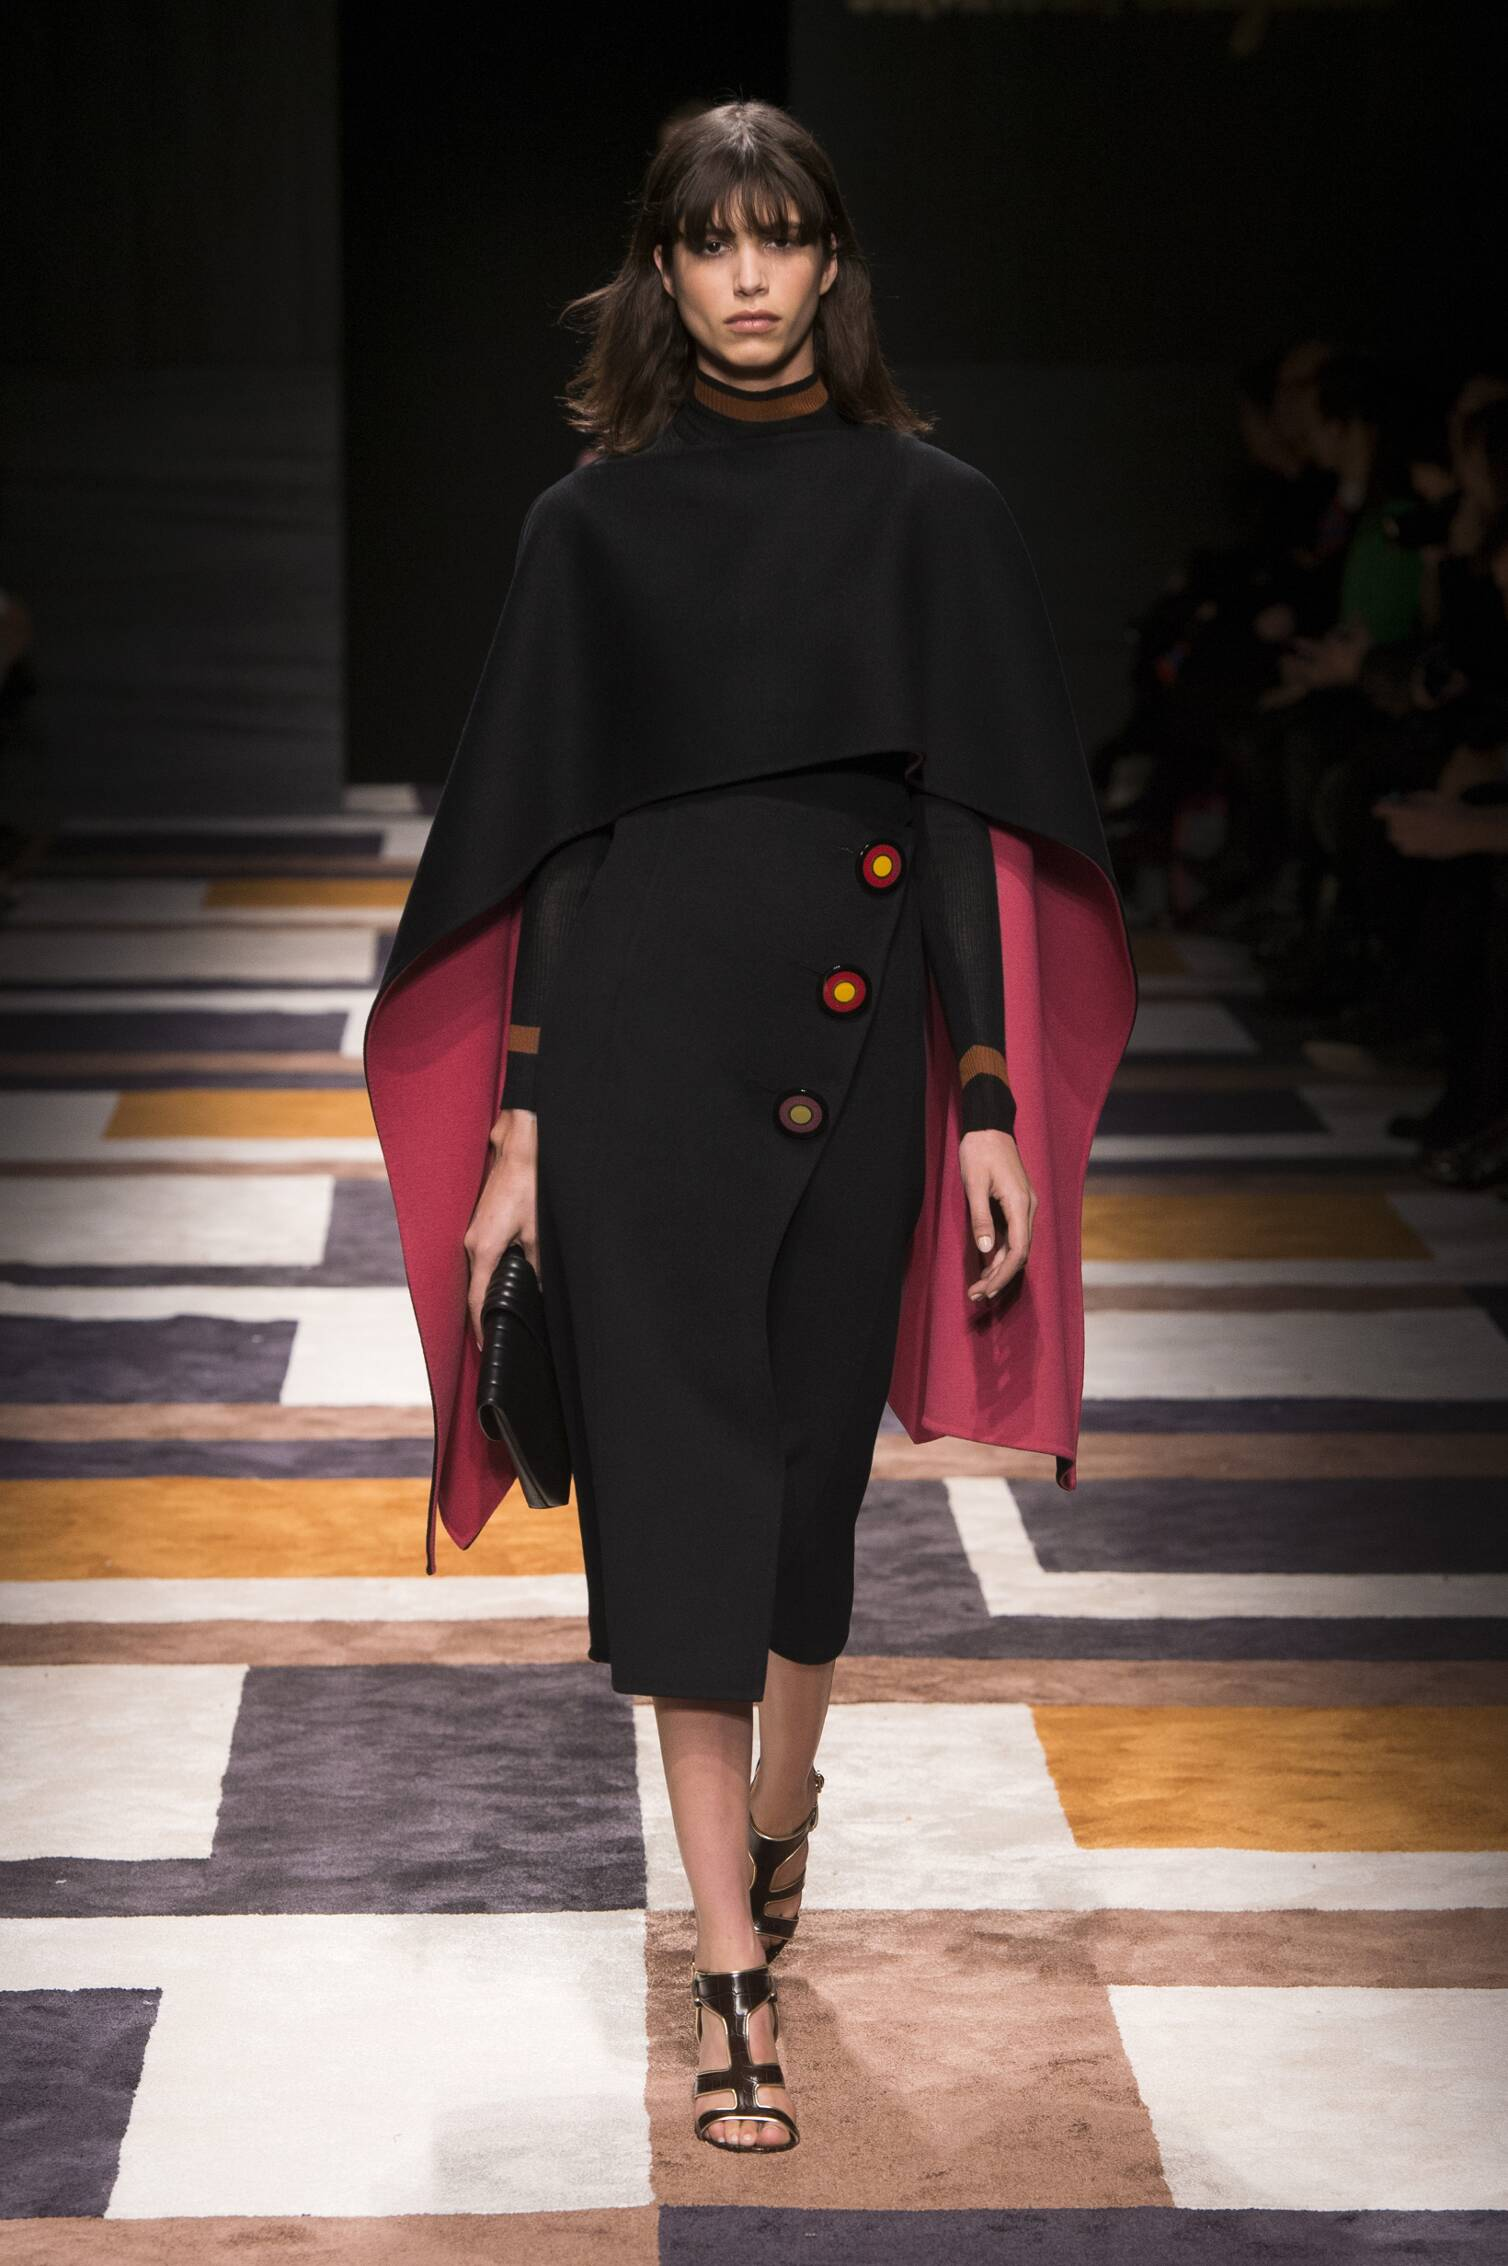 Salvatore Ferragamo Fall Winter 2015 16 Womenswear Collection Milan Fashion Week Fashion Show